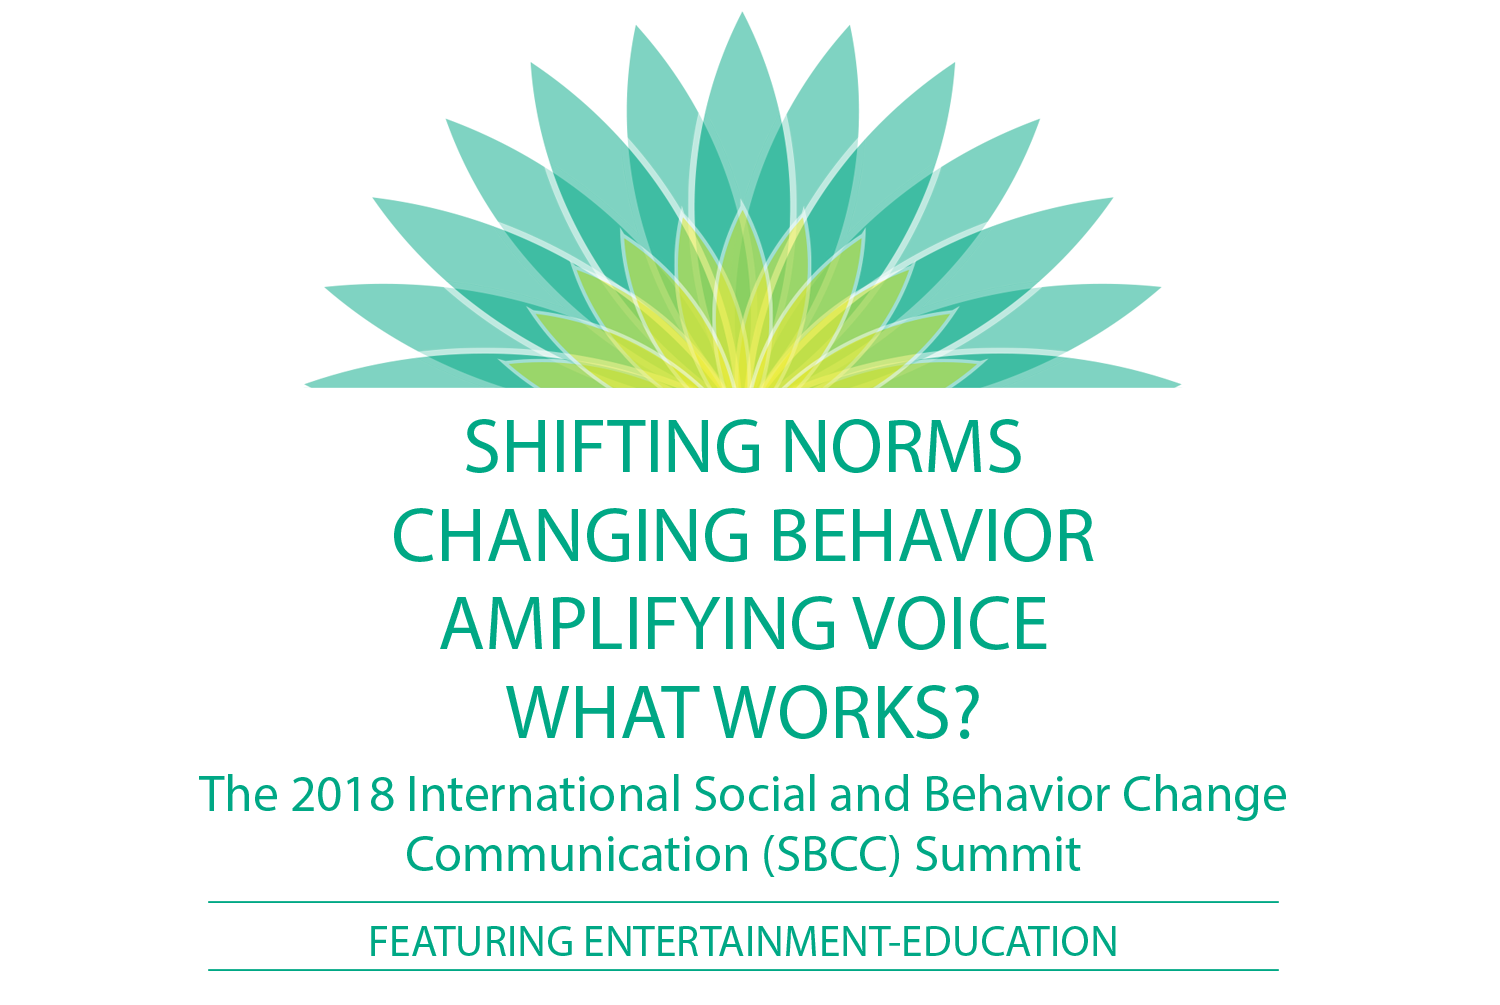 2018 International SBCC Summit Featuring Entertainment-Education